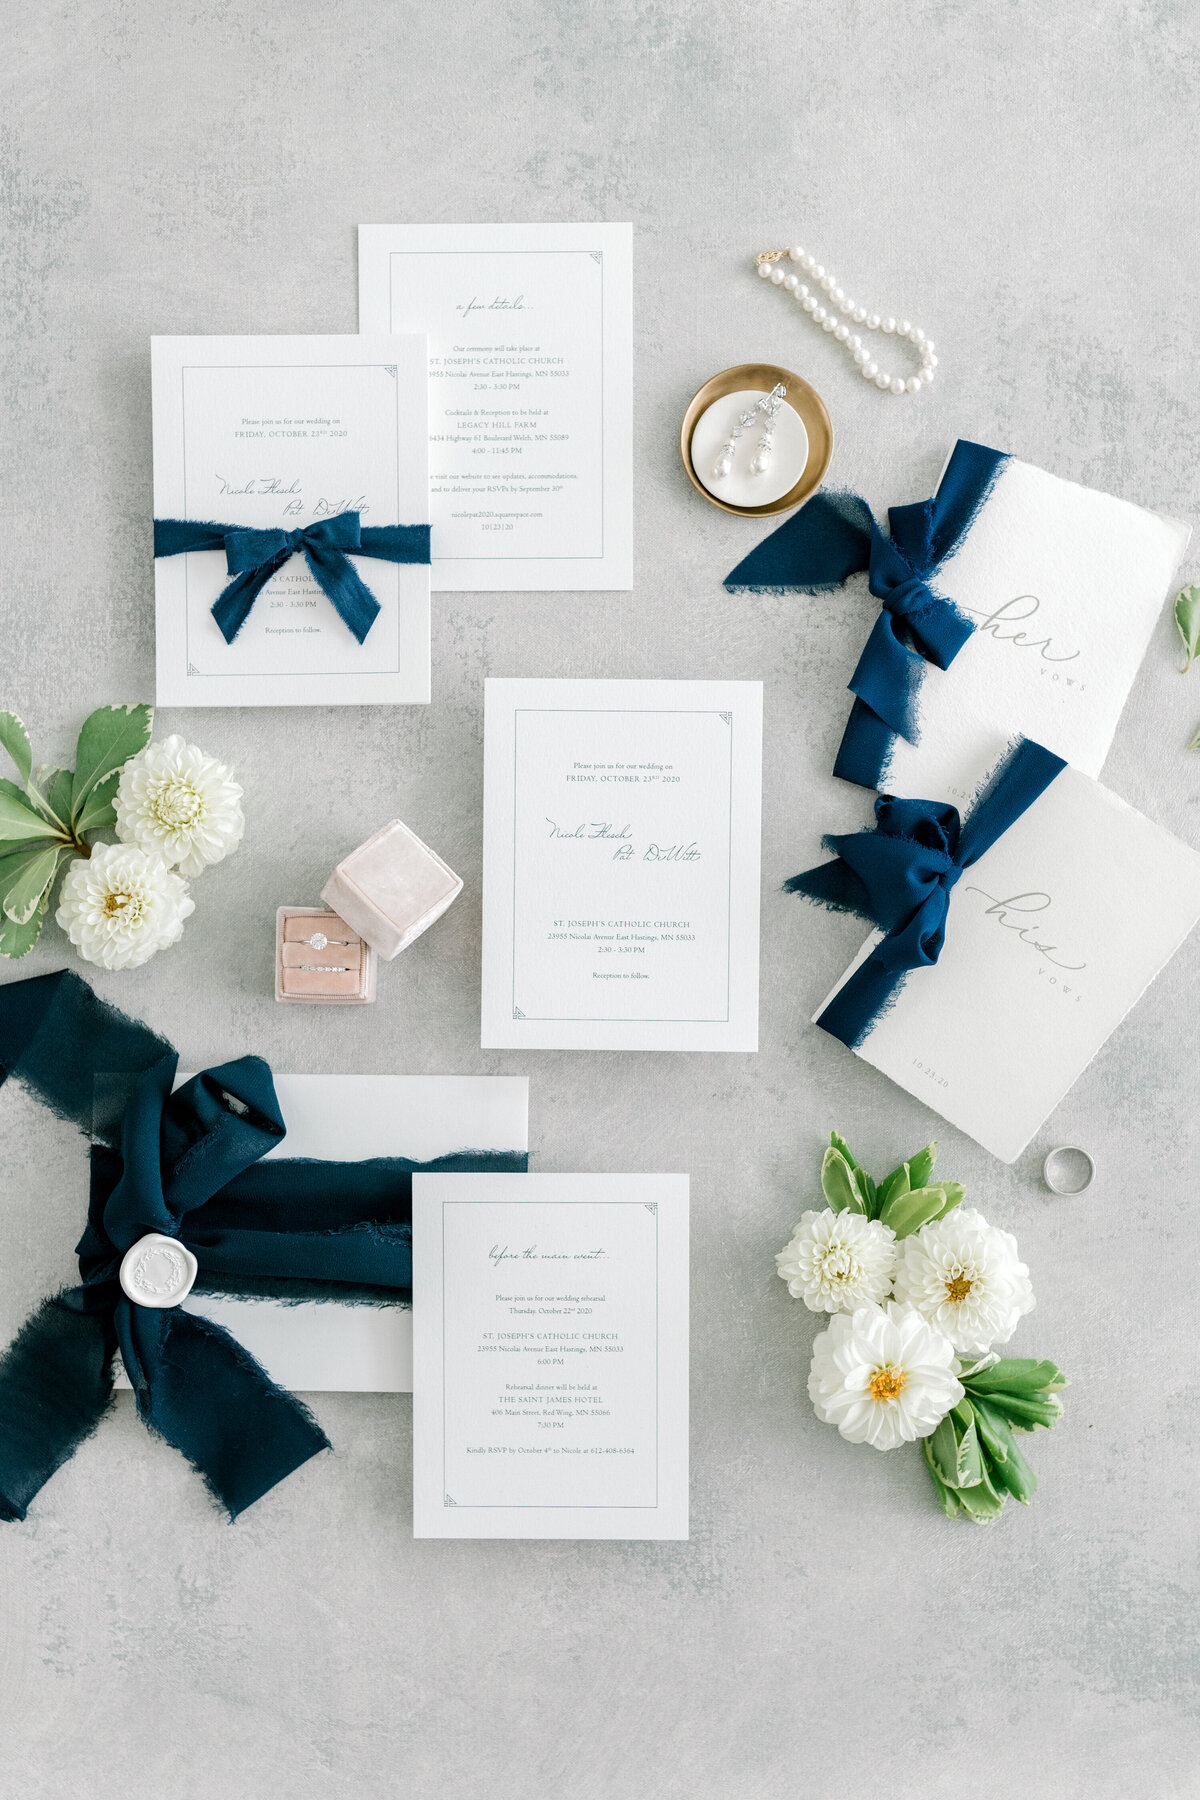 Minnesota wedding photographer, Minneapolis wedding photographer, MN wedding photographer, MN photographer, Wedding stationery, flat lay detail photos